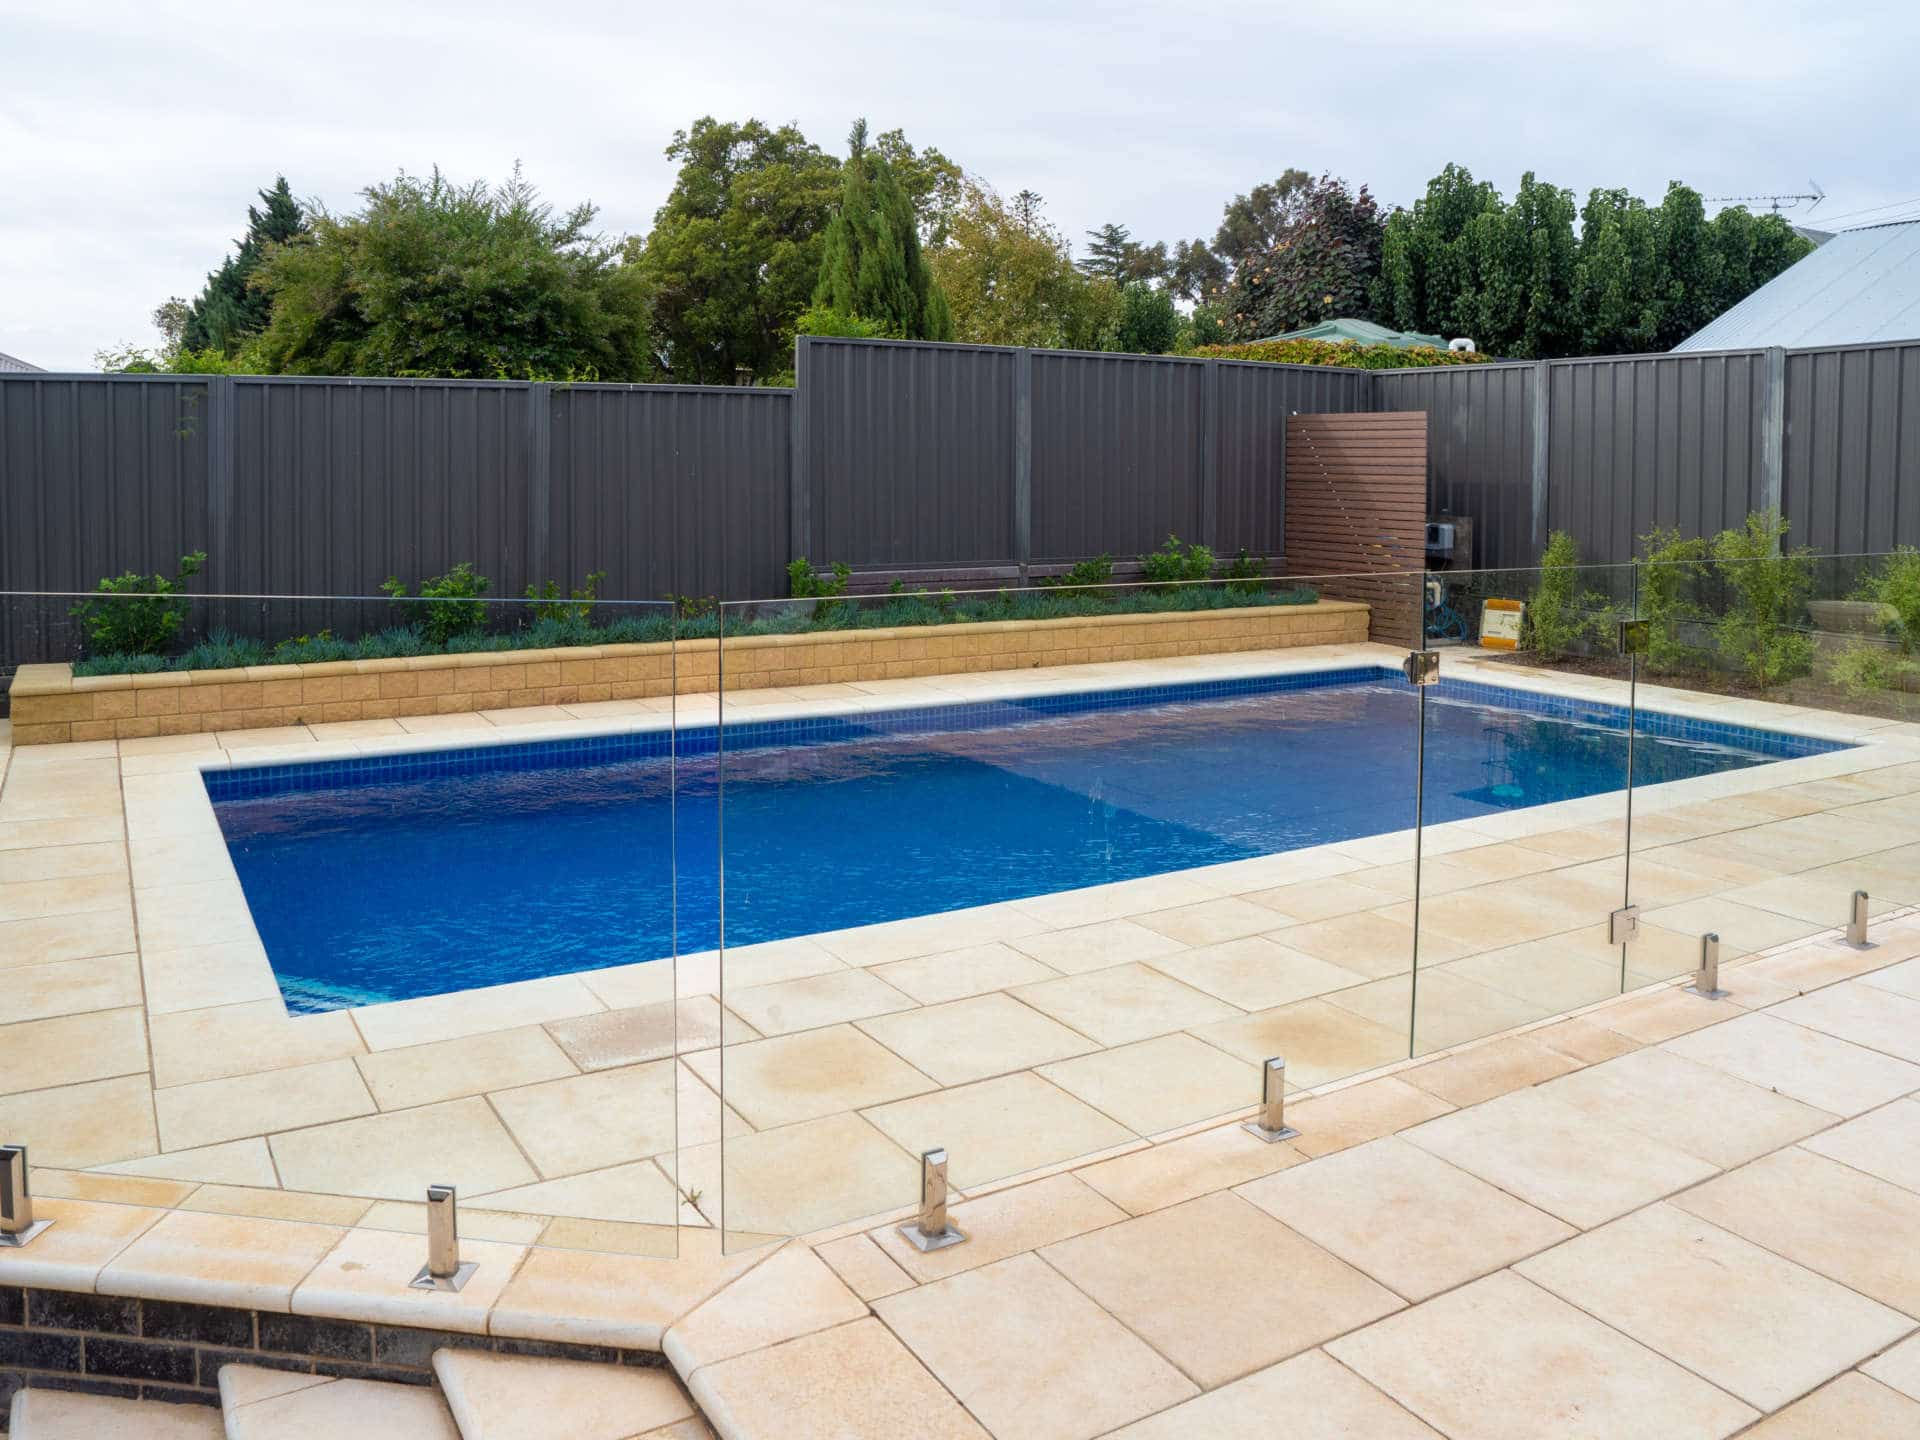 Australian Outdoor Living makes splash at South Australian awards ceremony - Australian Outdoor Living won gold in the Concrete Pool up to $50,000 category with this stunning install, Australian Outdoor Living.